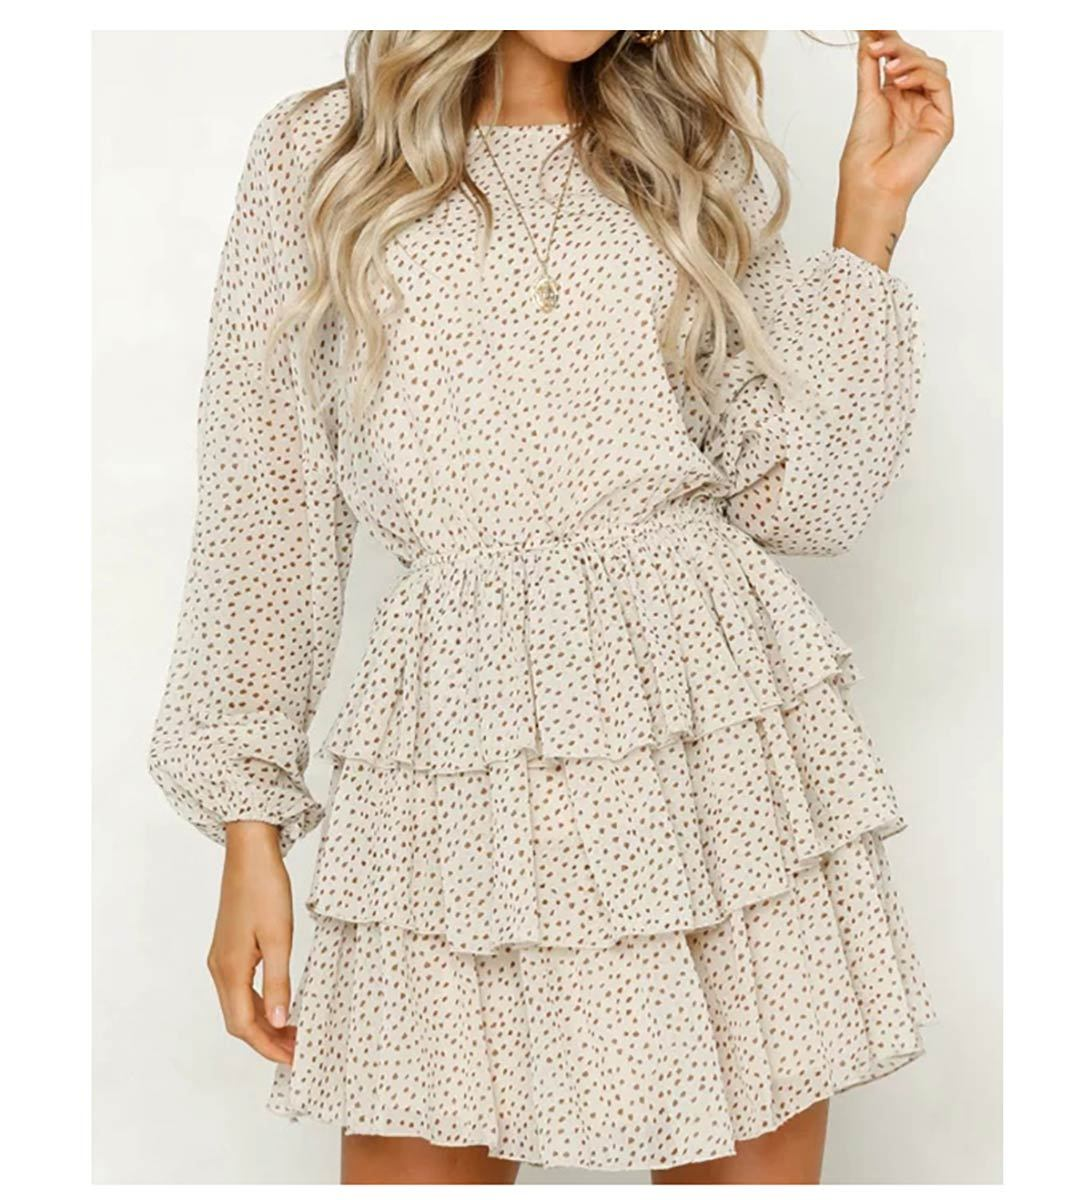 OTN Puff Sleeve Gathered Waist Ruffle Mini Dress in Cream Spot - Lookbook Boutique